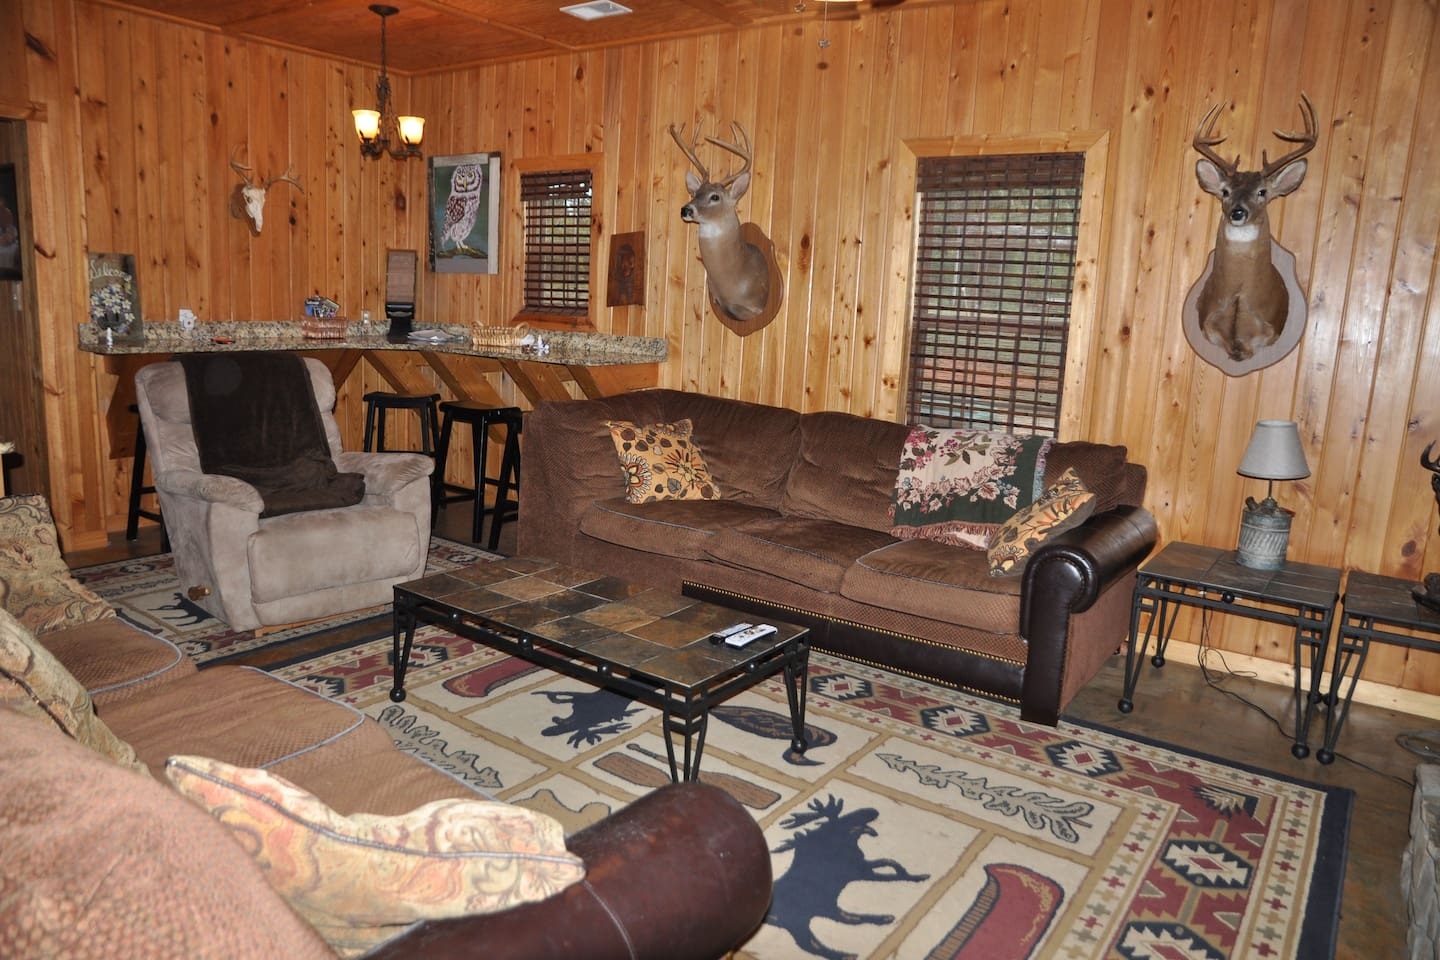 5 bedroom 3 baths 6 miles from Callaway Gardens Cabins for